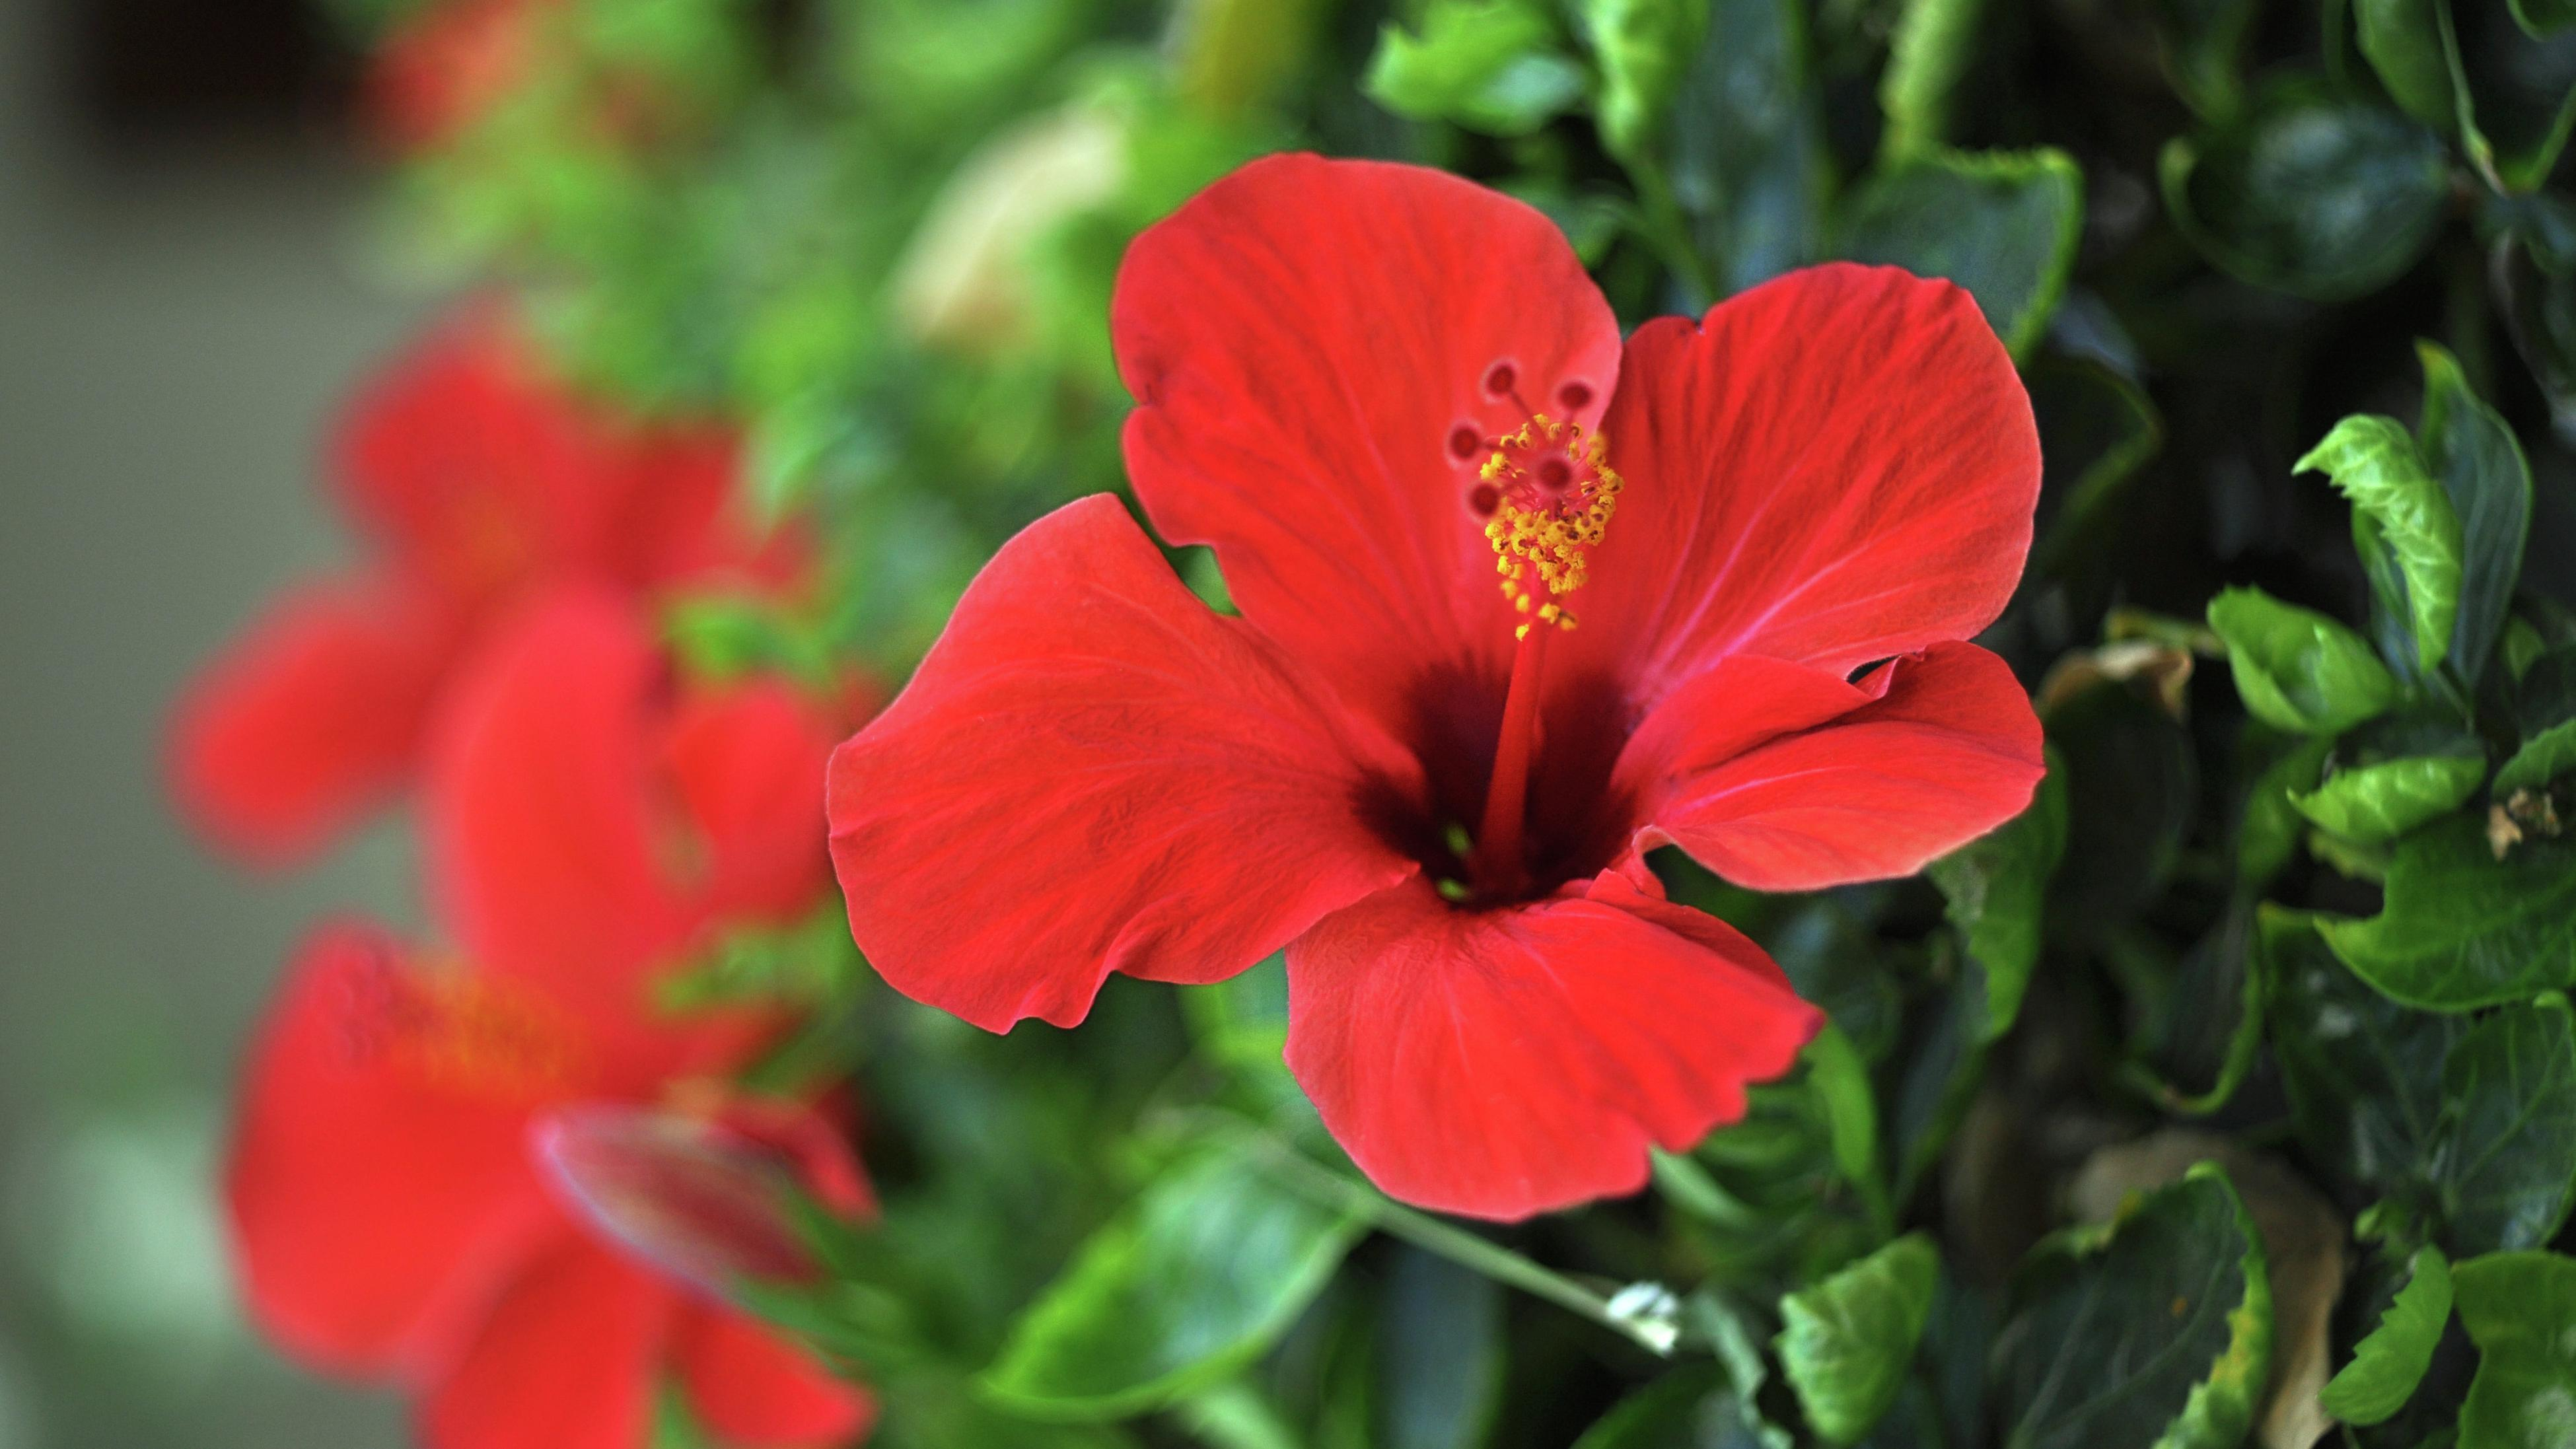 Close up of a red hibiscus flower.